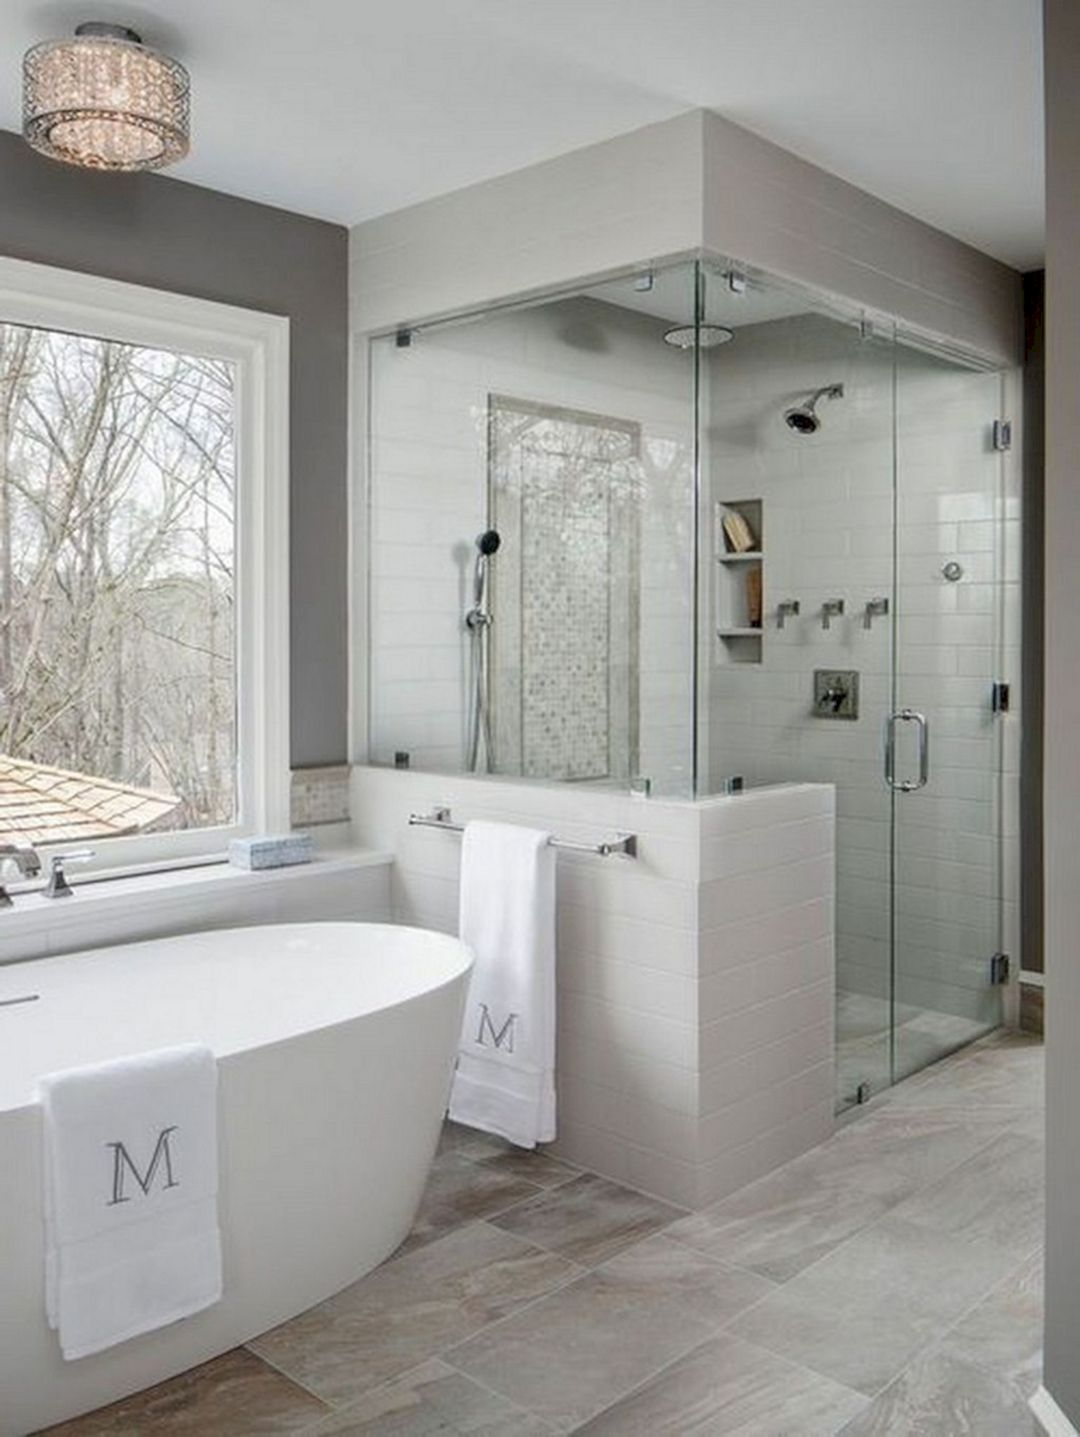 15 Gorgeous Small Bathroom Remodel Ideas On A Budget Freshouz Com Bathroom Remodel Designs Bathroom Remodel Master Master Bathroom Design Bathroom remodel design ideas